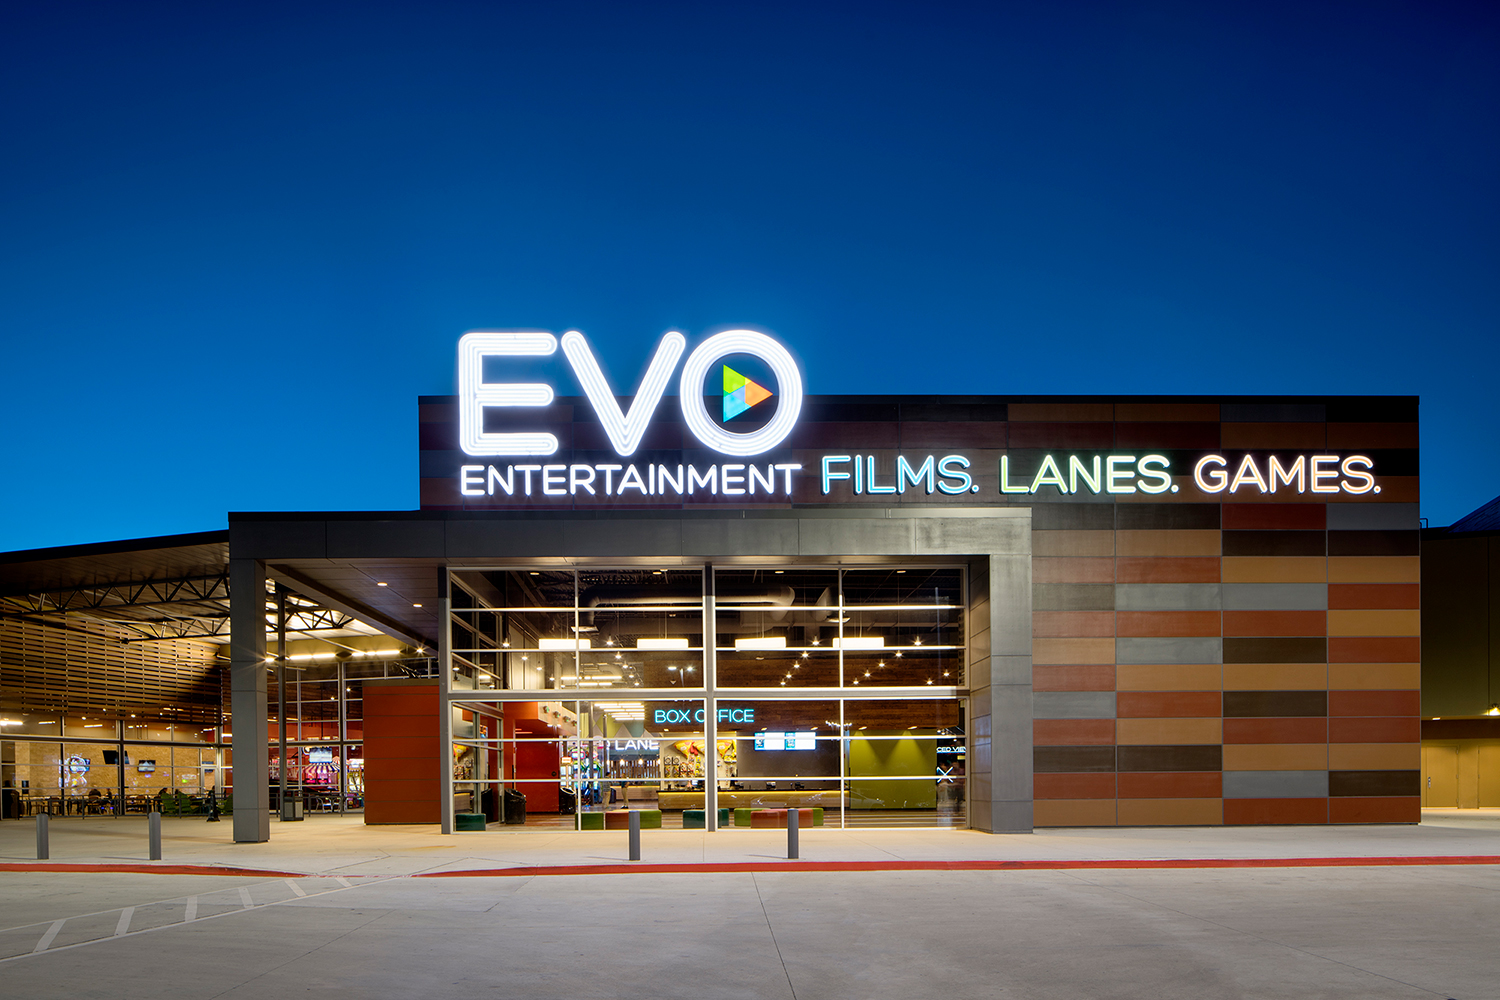 Short drive south to EVO Entertainment provides affordable fun